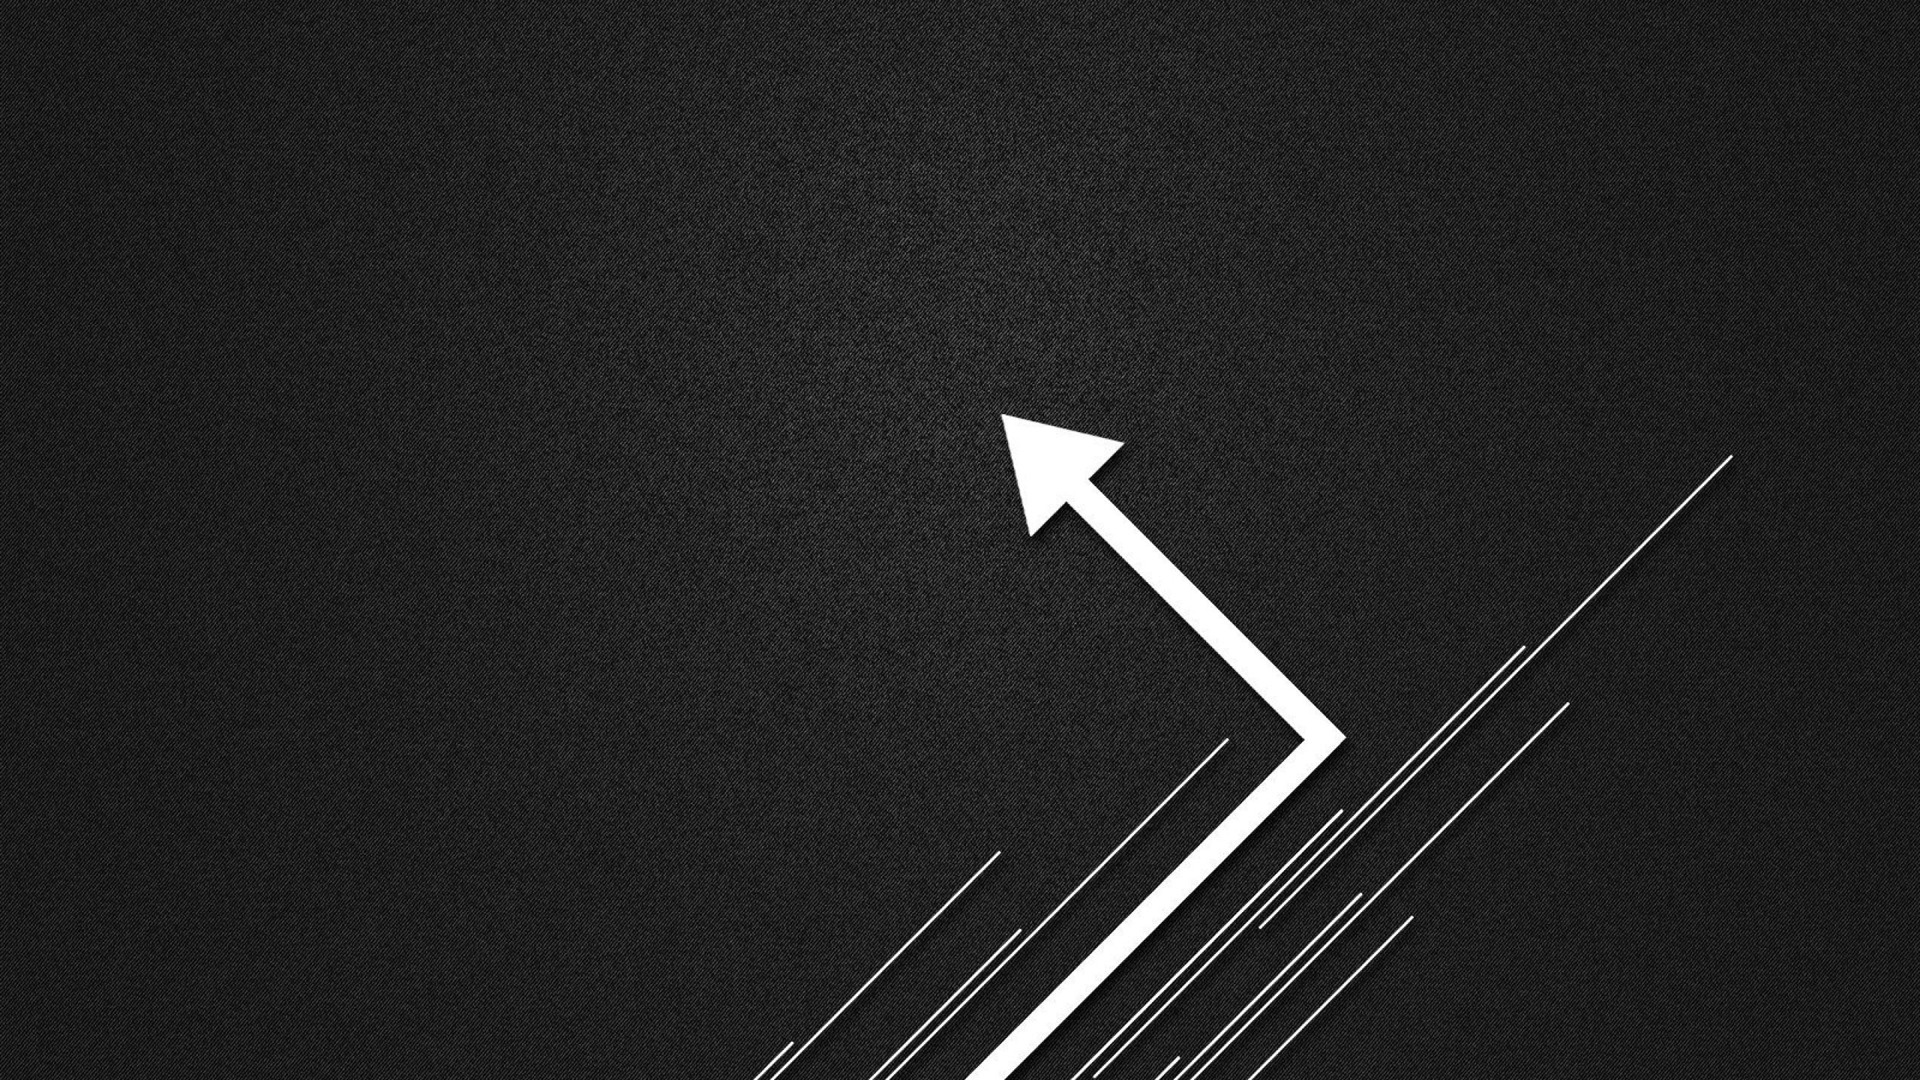 26 2015 By Stephen Comments Off on Abstract Arrow HD Wallpapers 1920x1080